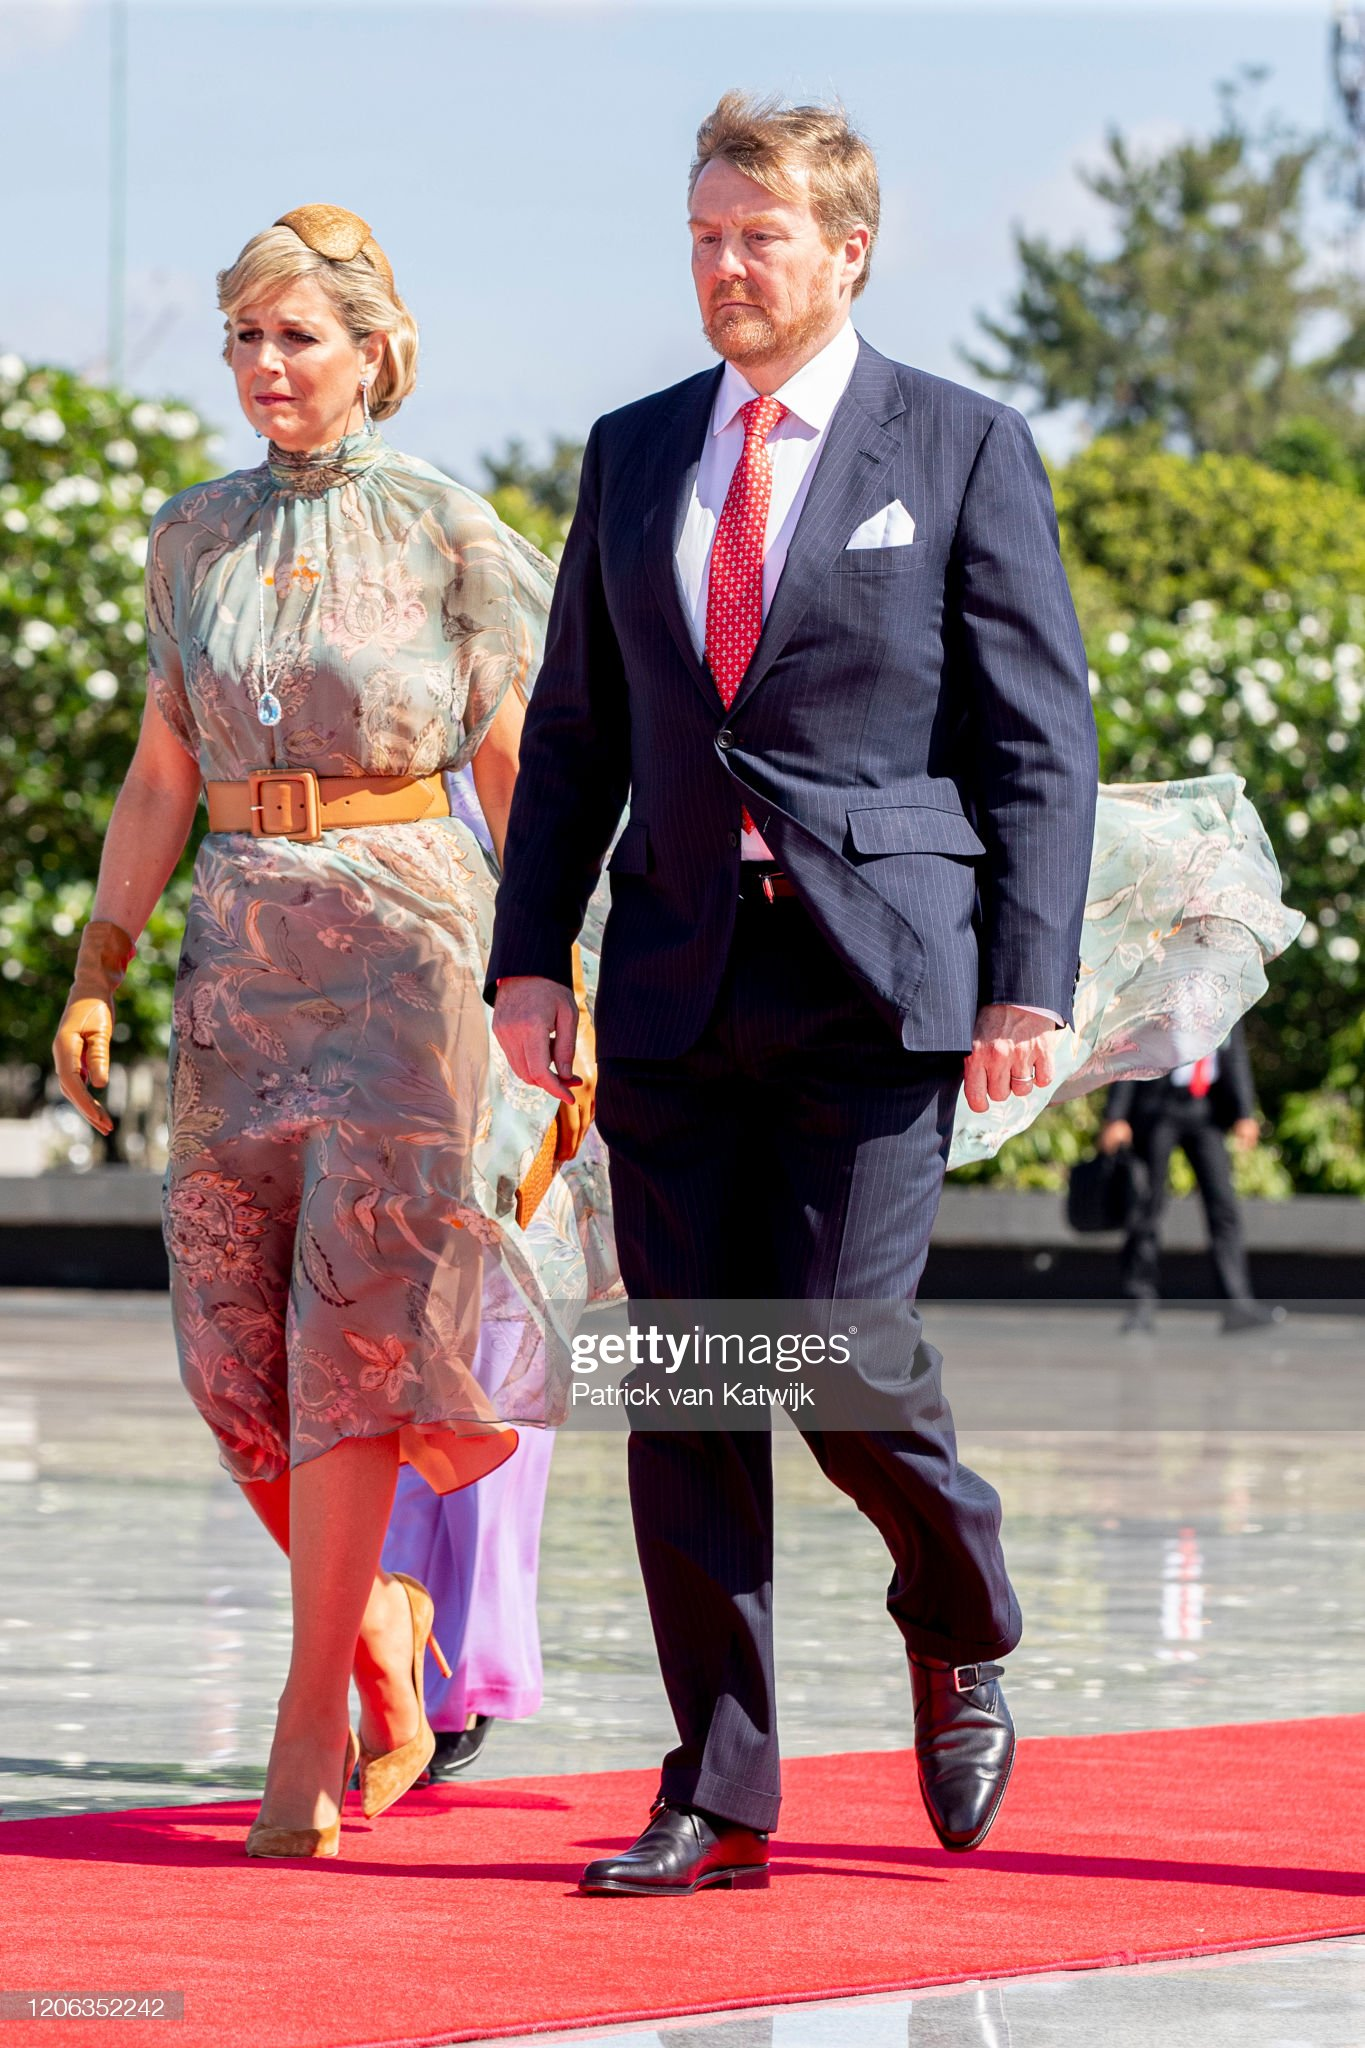 https://media.gettyimages.com/photos/king-willemalexander-of-the-netherlands-and-queen-maxima-of-the-a-picture-id1206352242?s=2048x2048